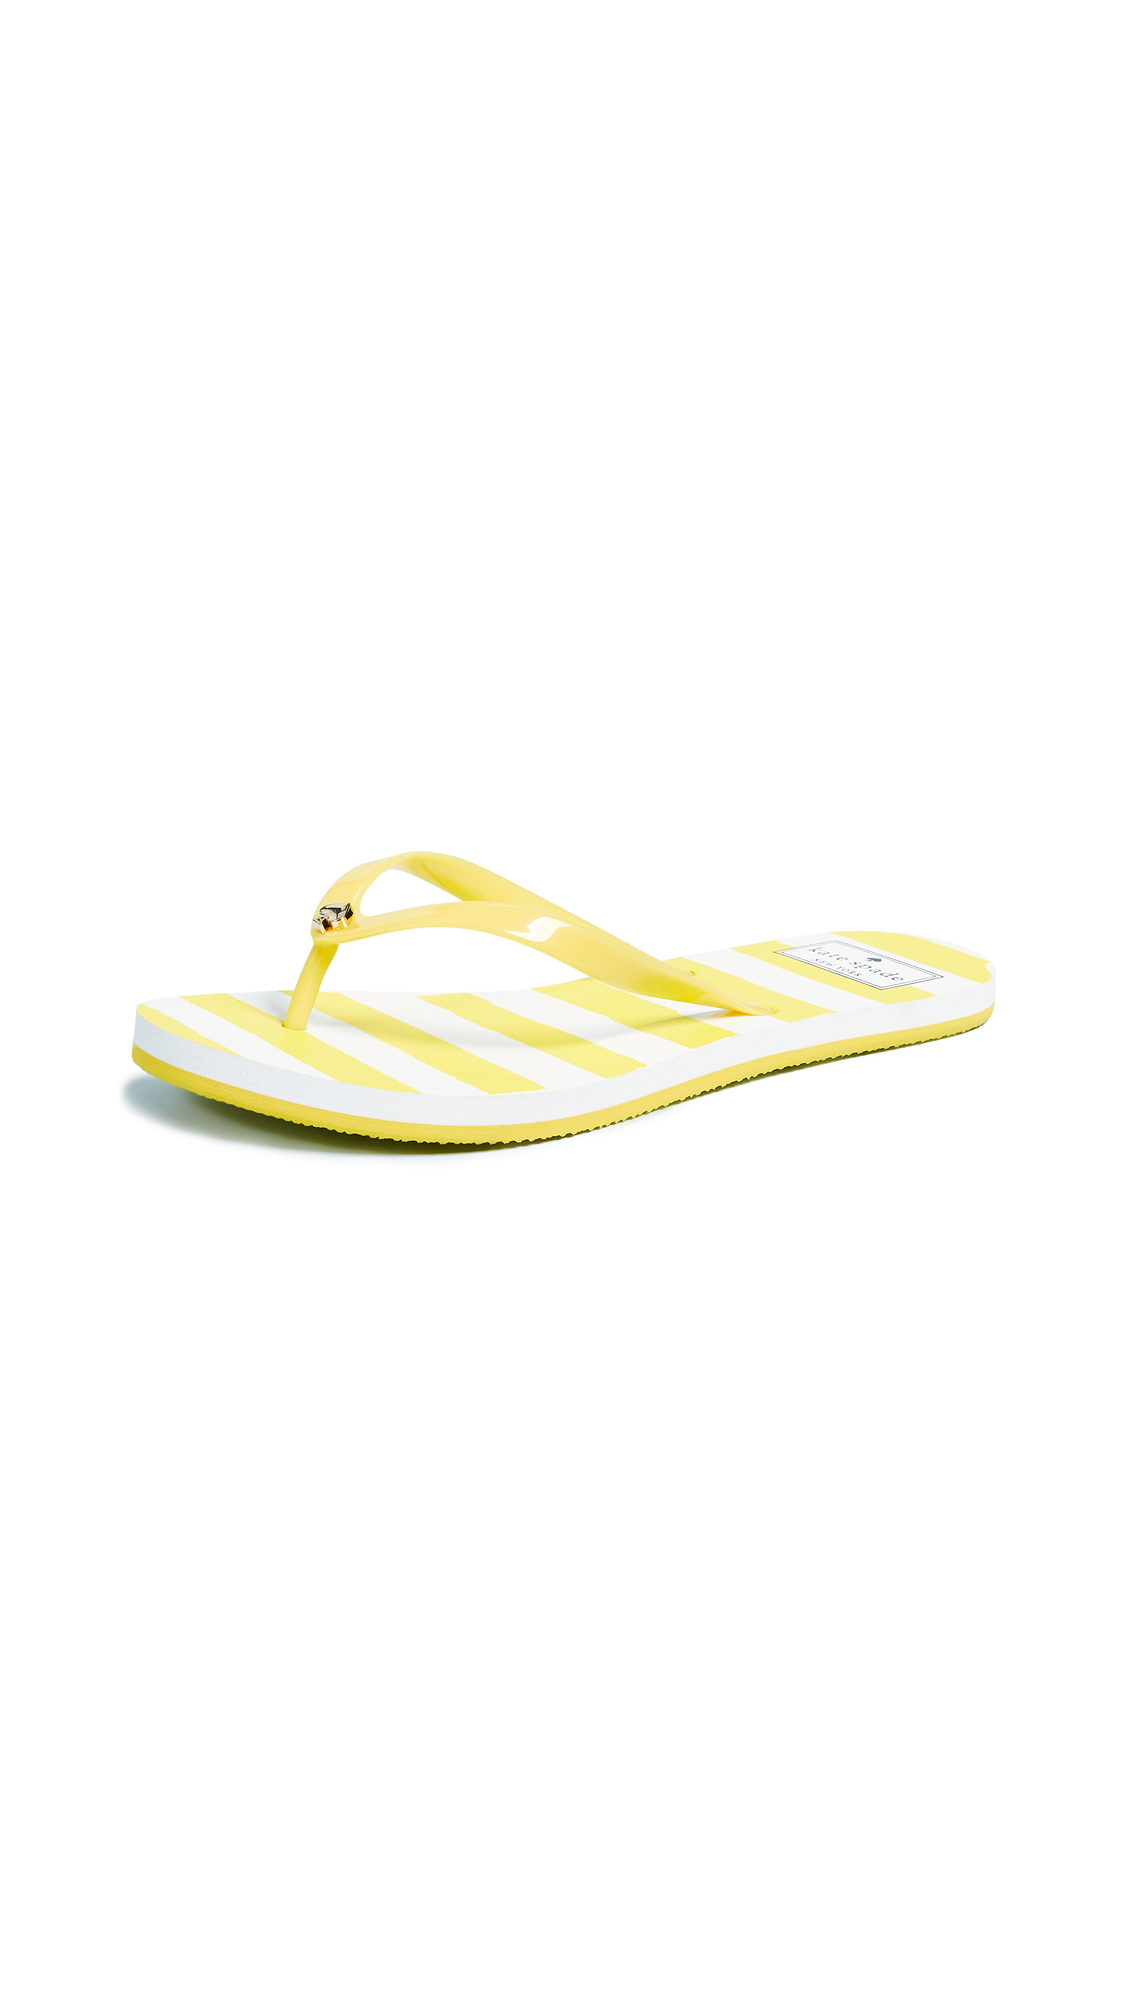 Kate Spade New York Nassau Flip Flops - Yellow/White Stripes